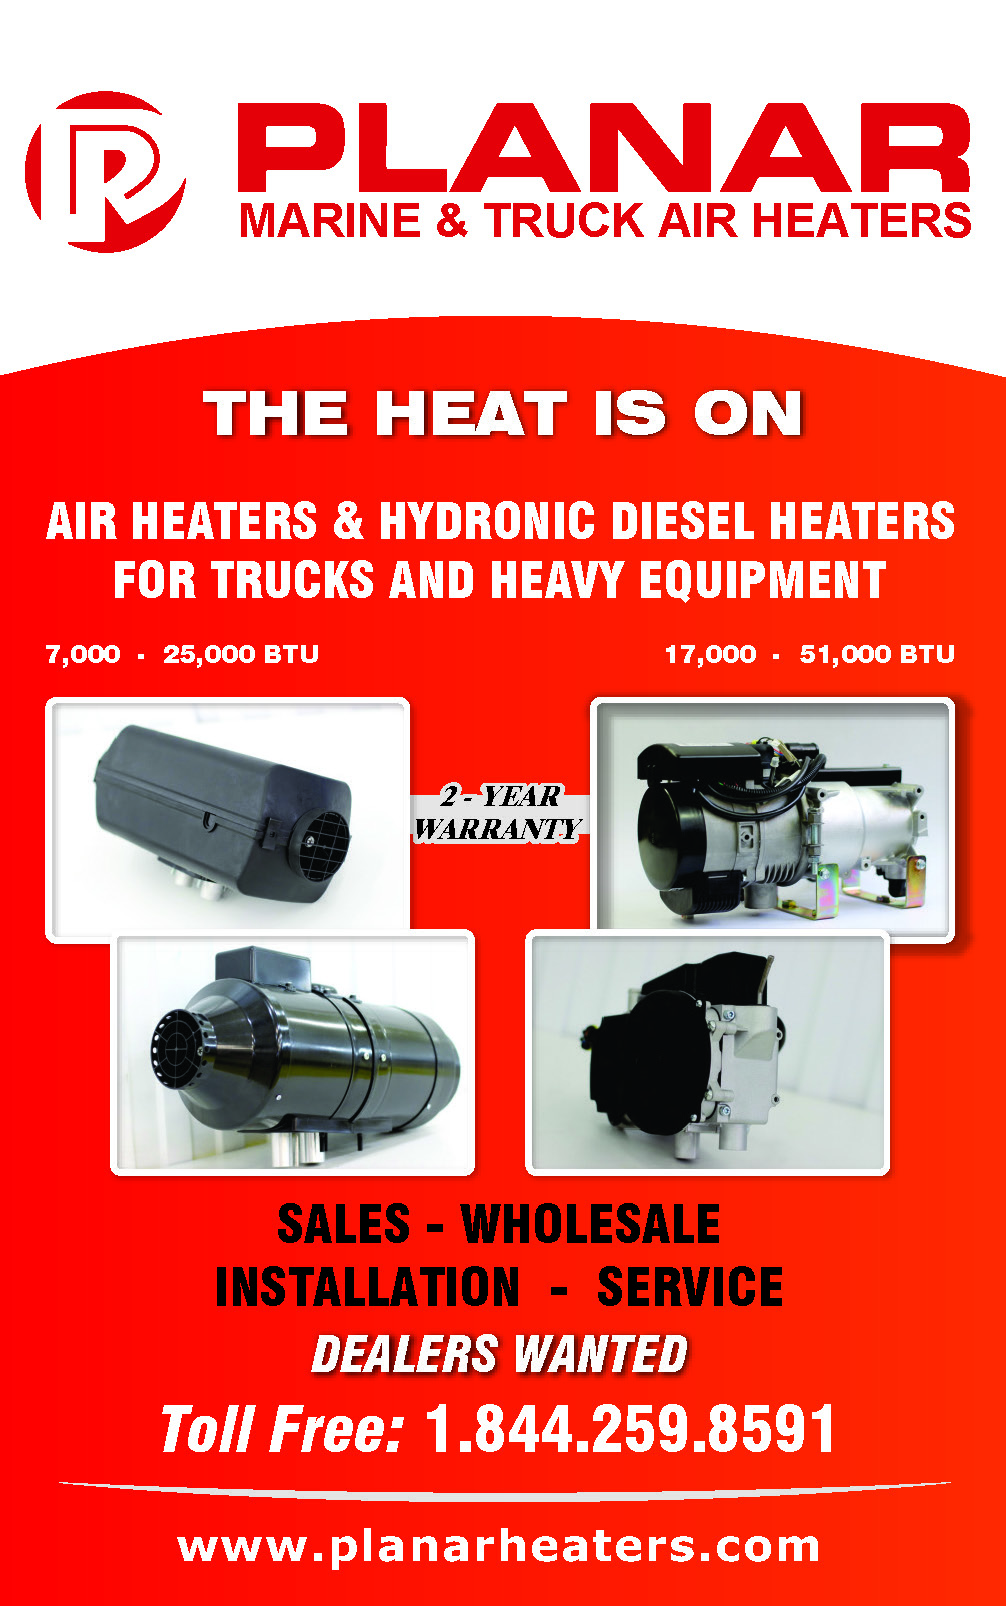 planar-marine-and-truck-air-heaters-MlcSpHa.jpeg